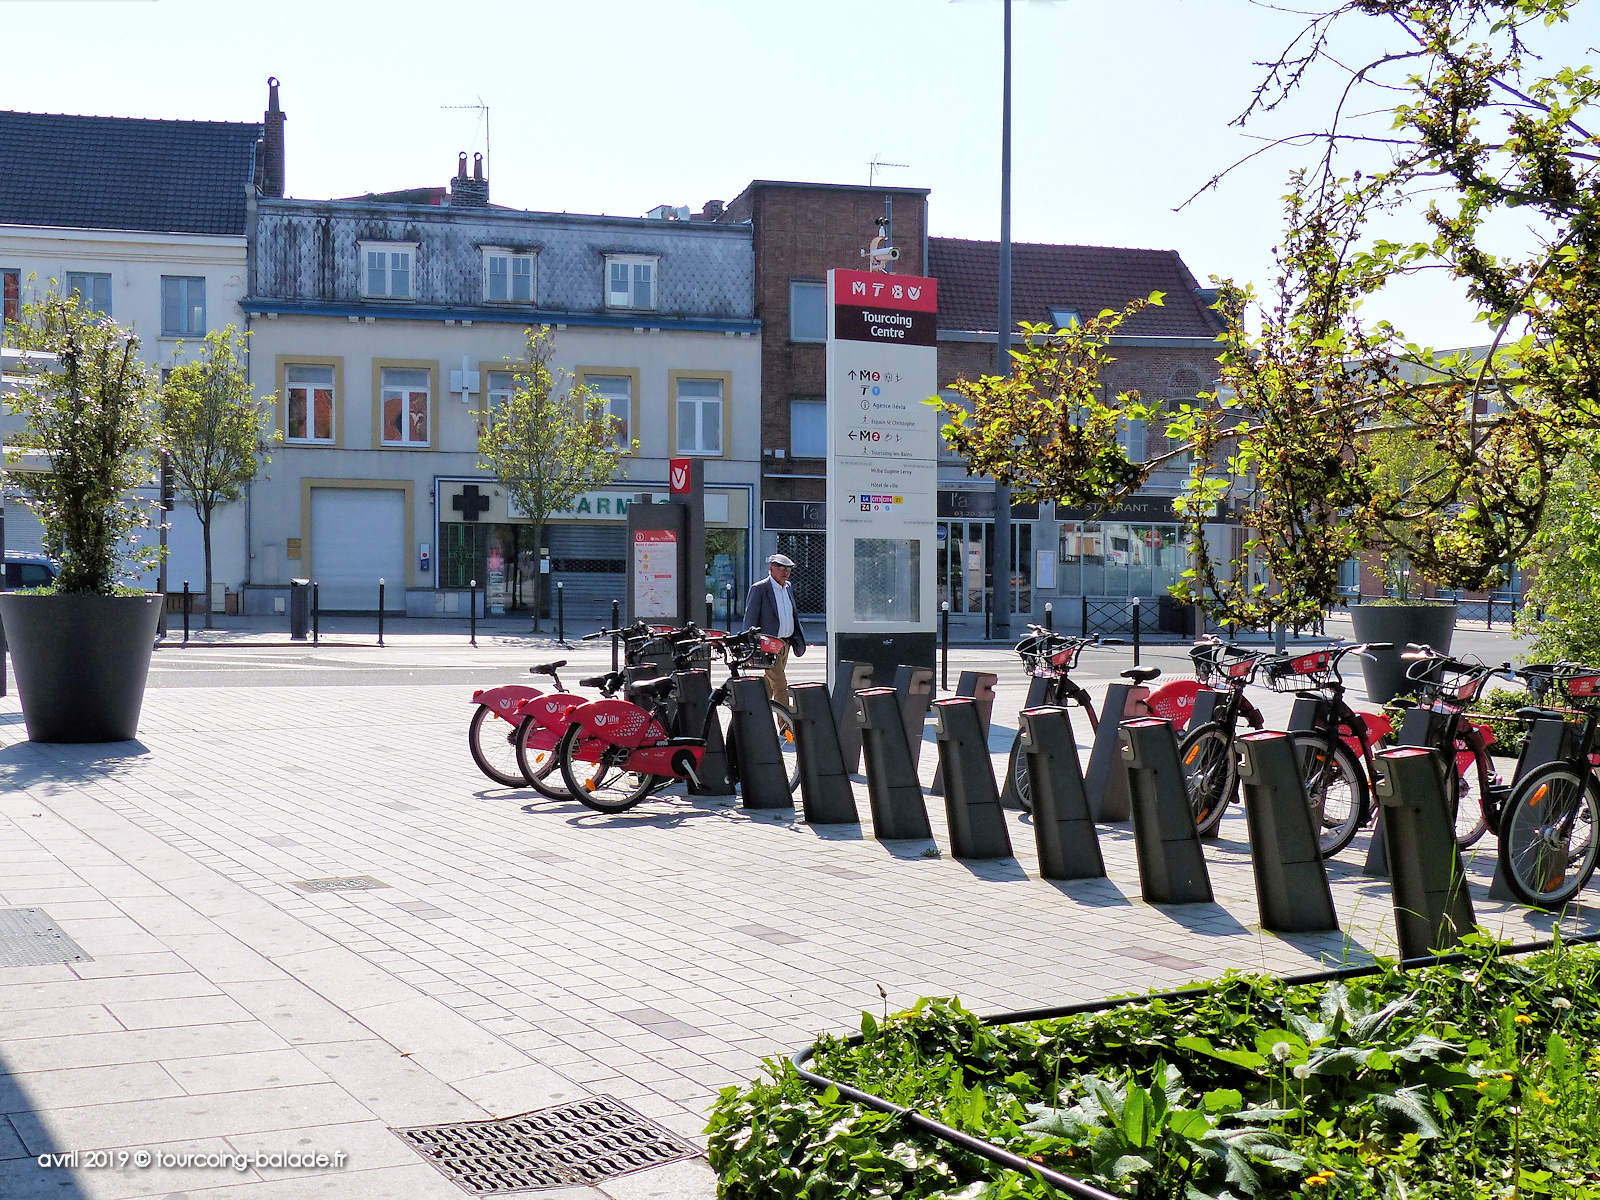 Station V'Lille Roussel Tourcoing - Pharmacie Dewailly - 2019